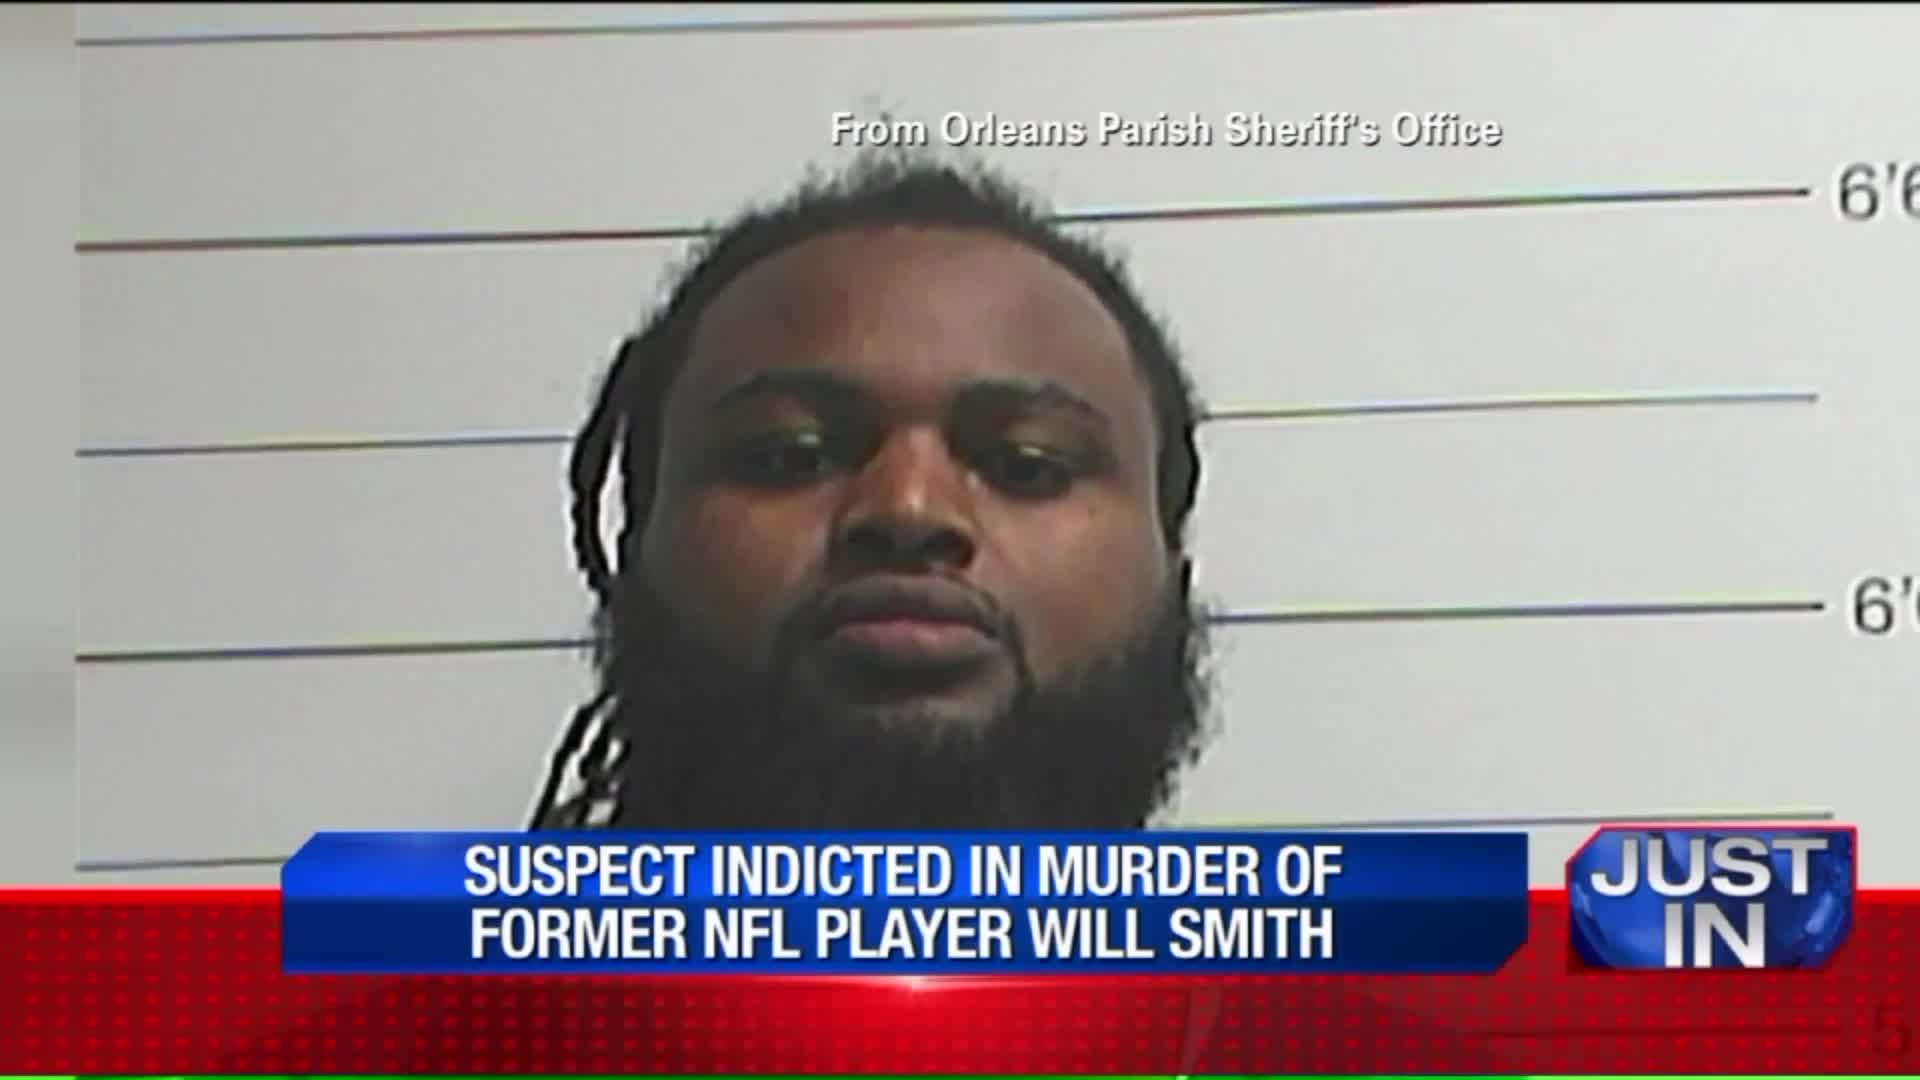 Man Indicted On Murder, Attempted Murder Charges In Killing of Will Smith